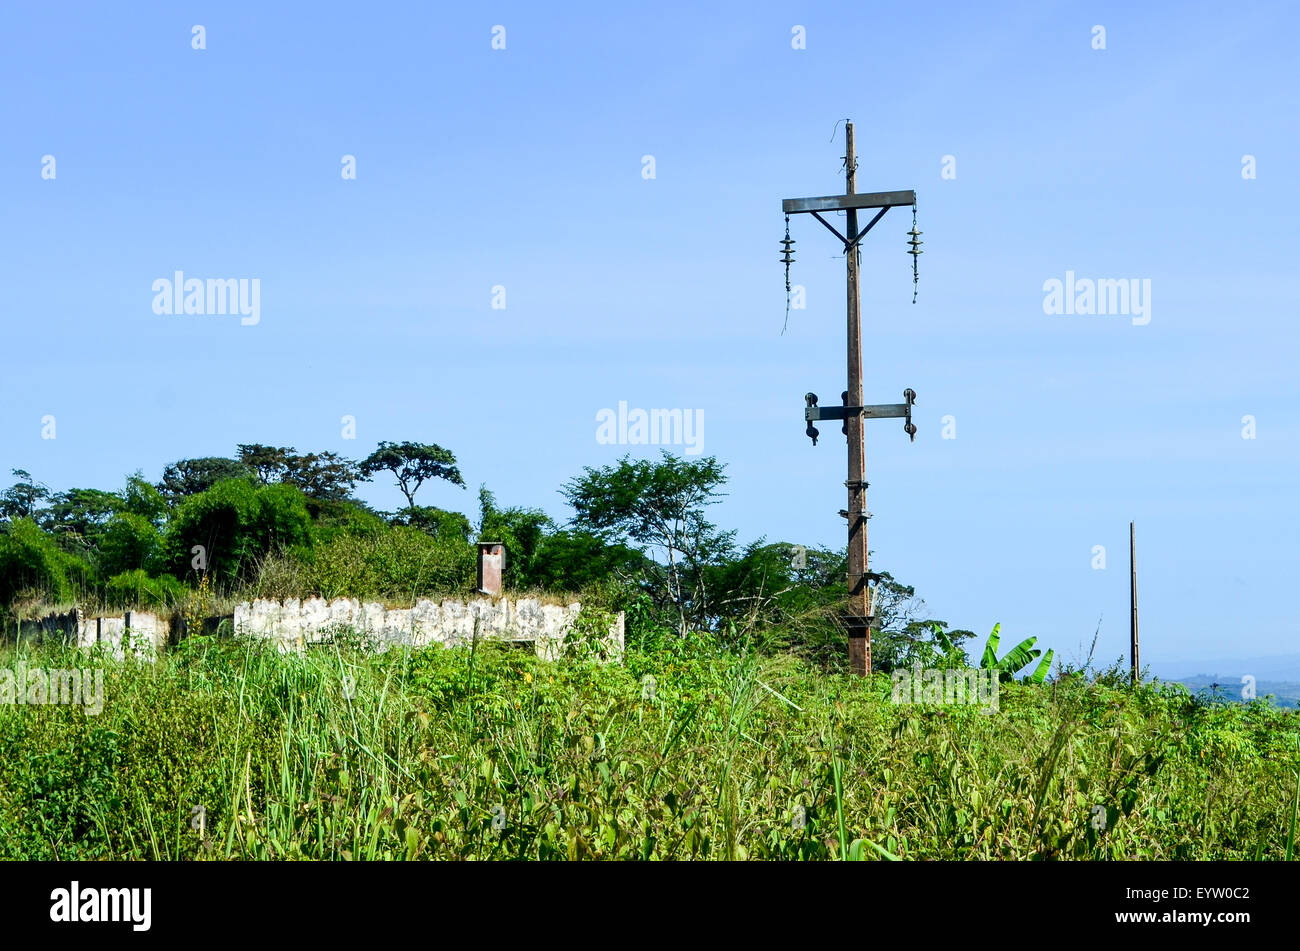 Abandoned electricity pole in Angola - Stock Image